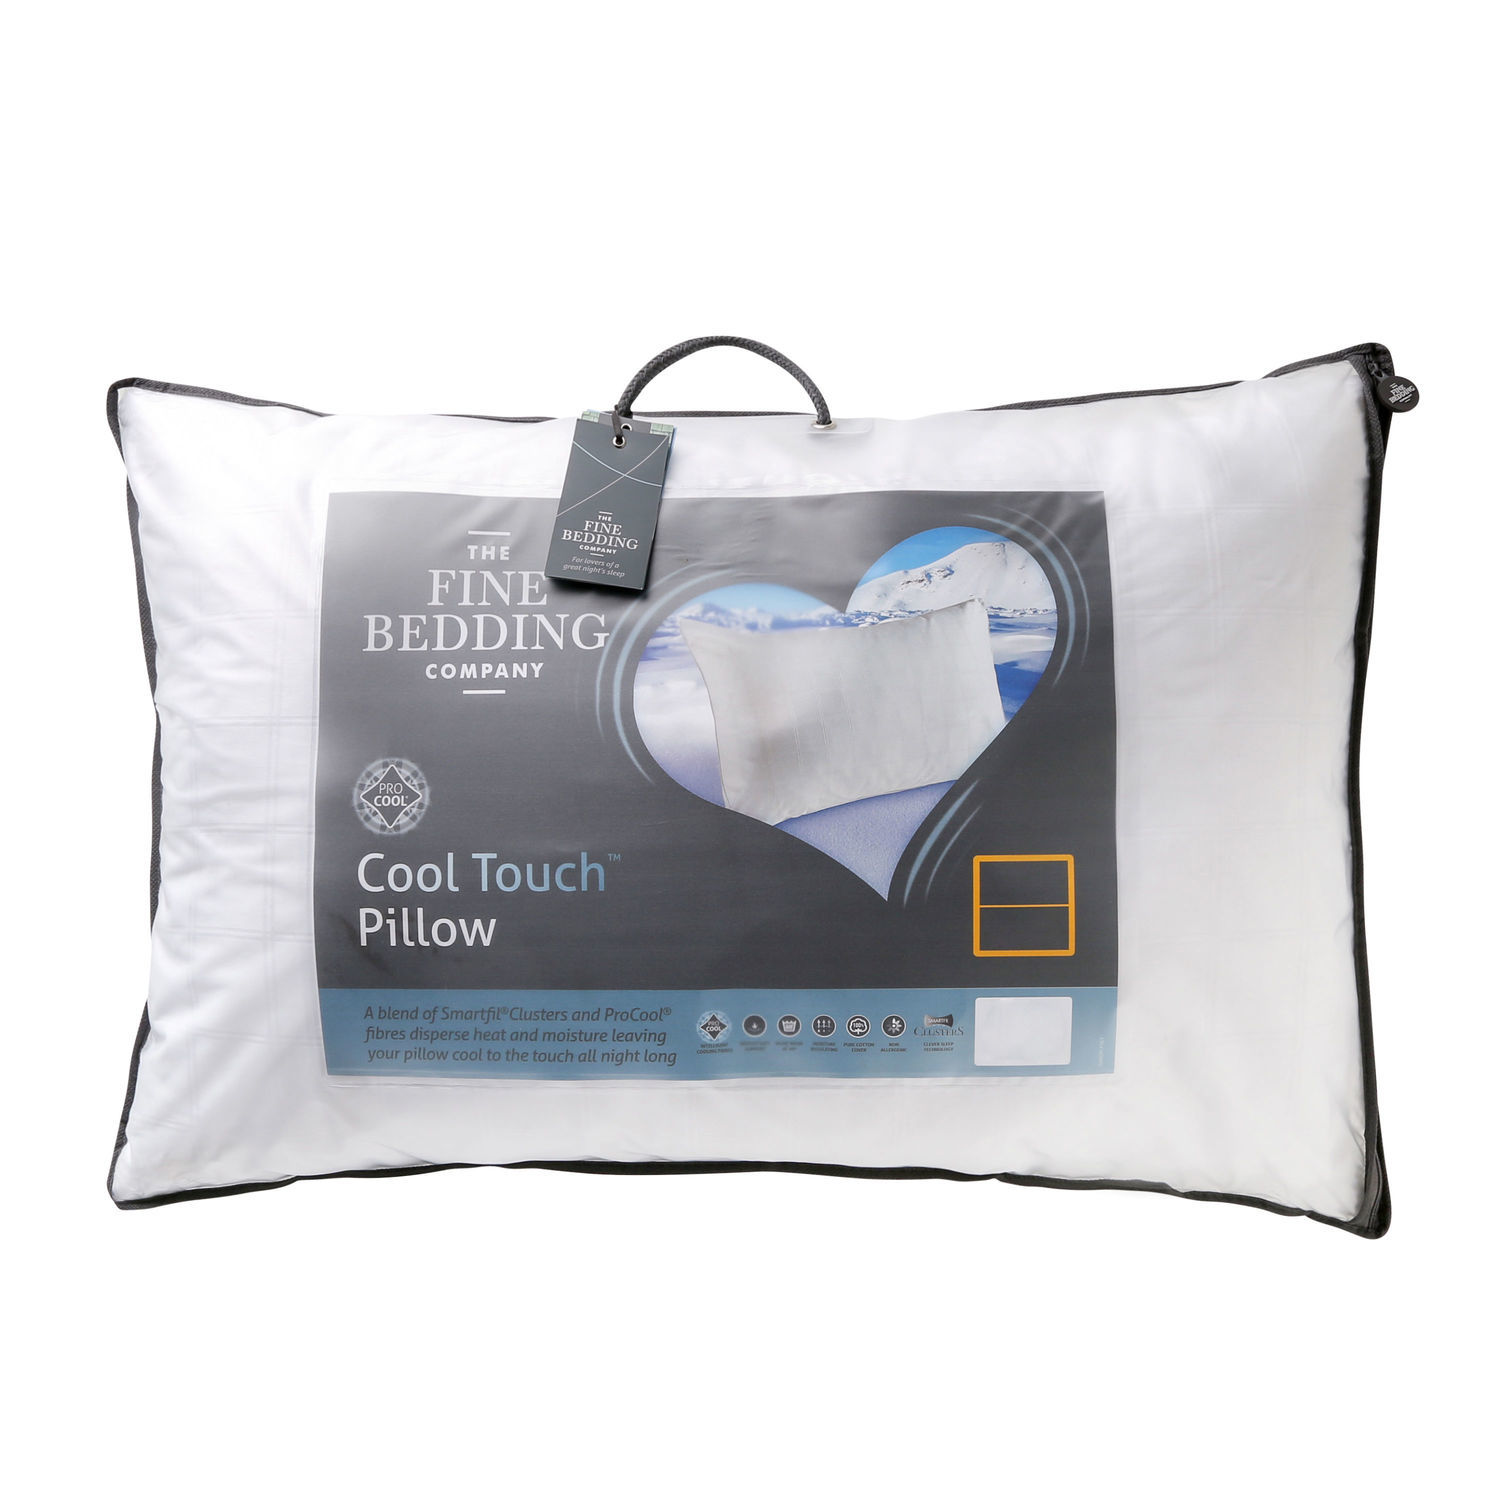 The Fine Bedding Co. Cool Touch Pillow